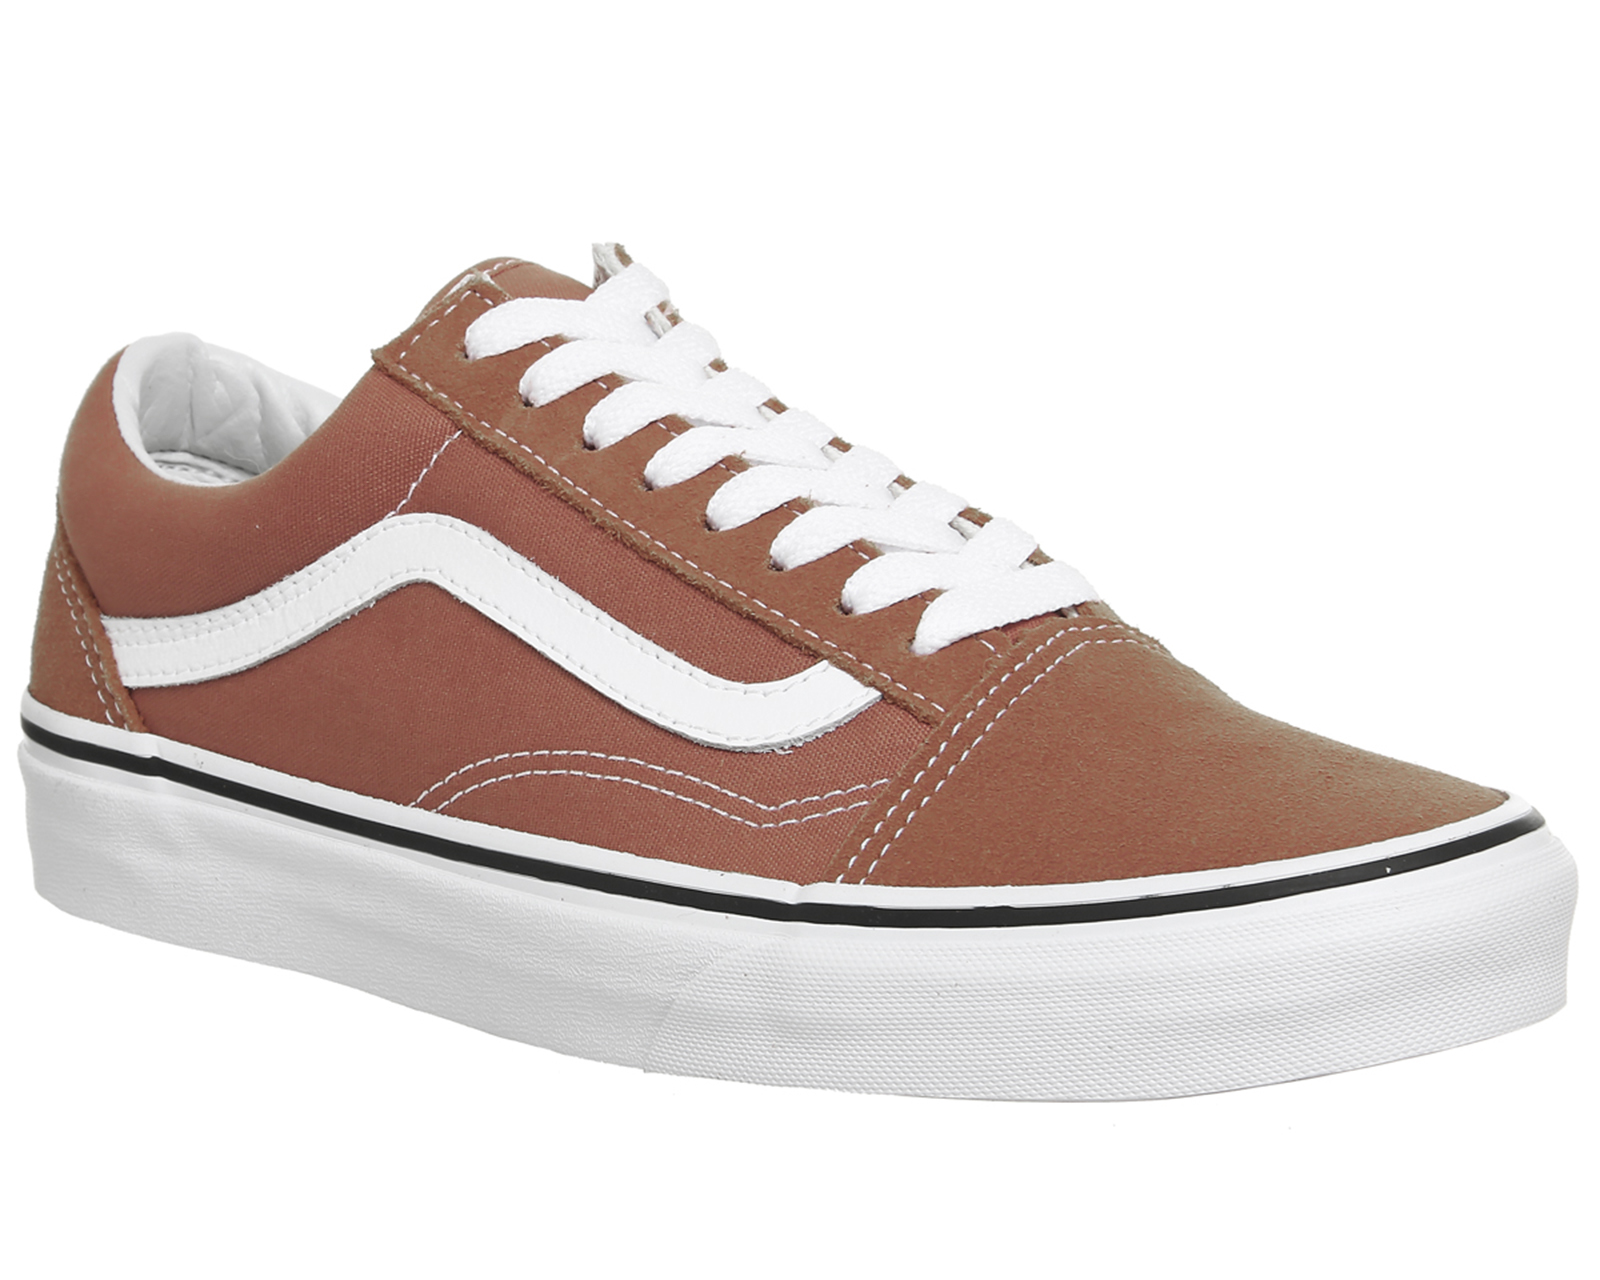 Sentinel Mens Vans Old Skool Trainers AUTUMN GLAZE WHITE Trainers Shoes ae4e00524